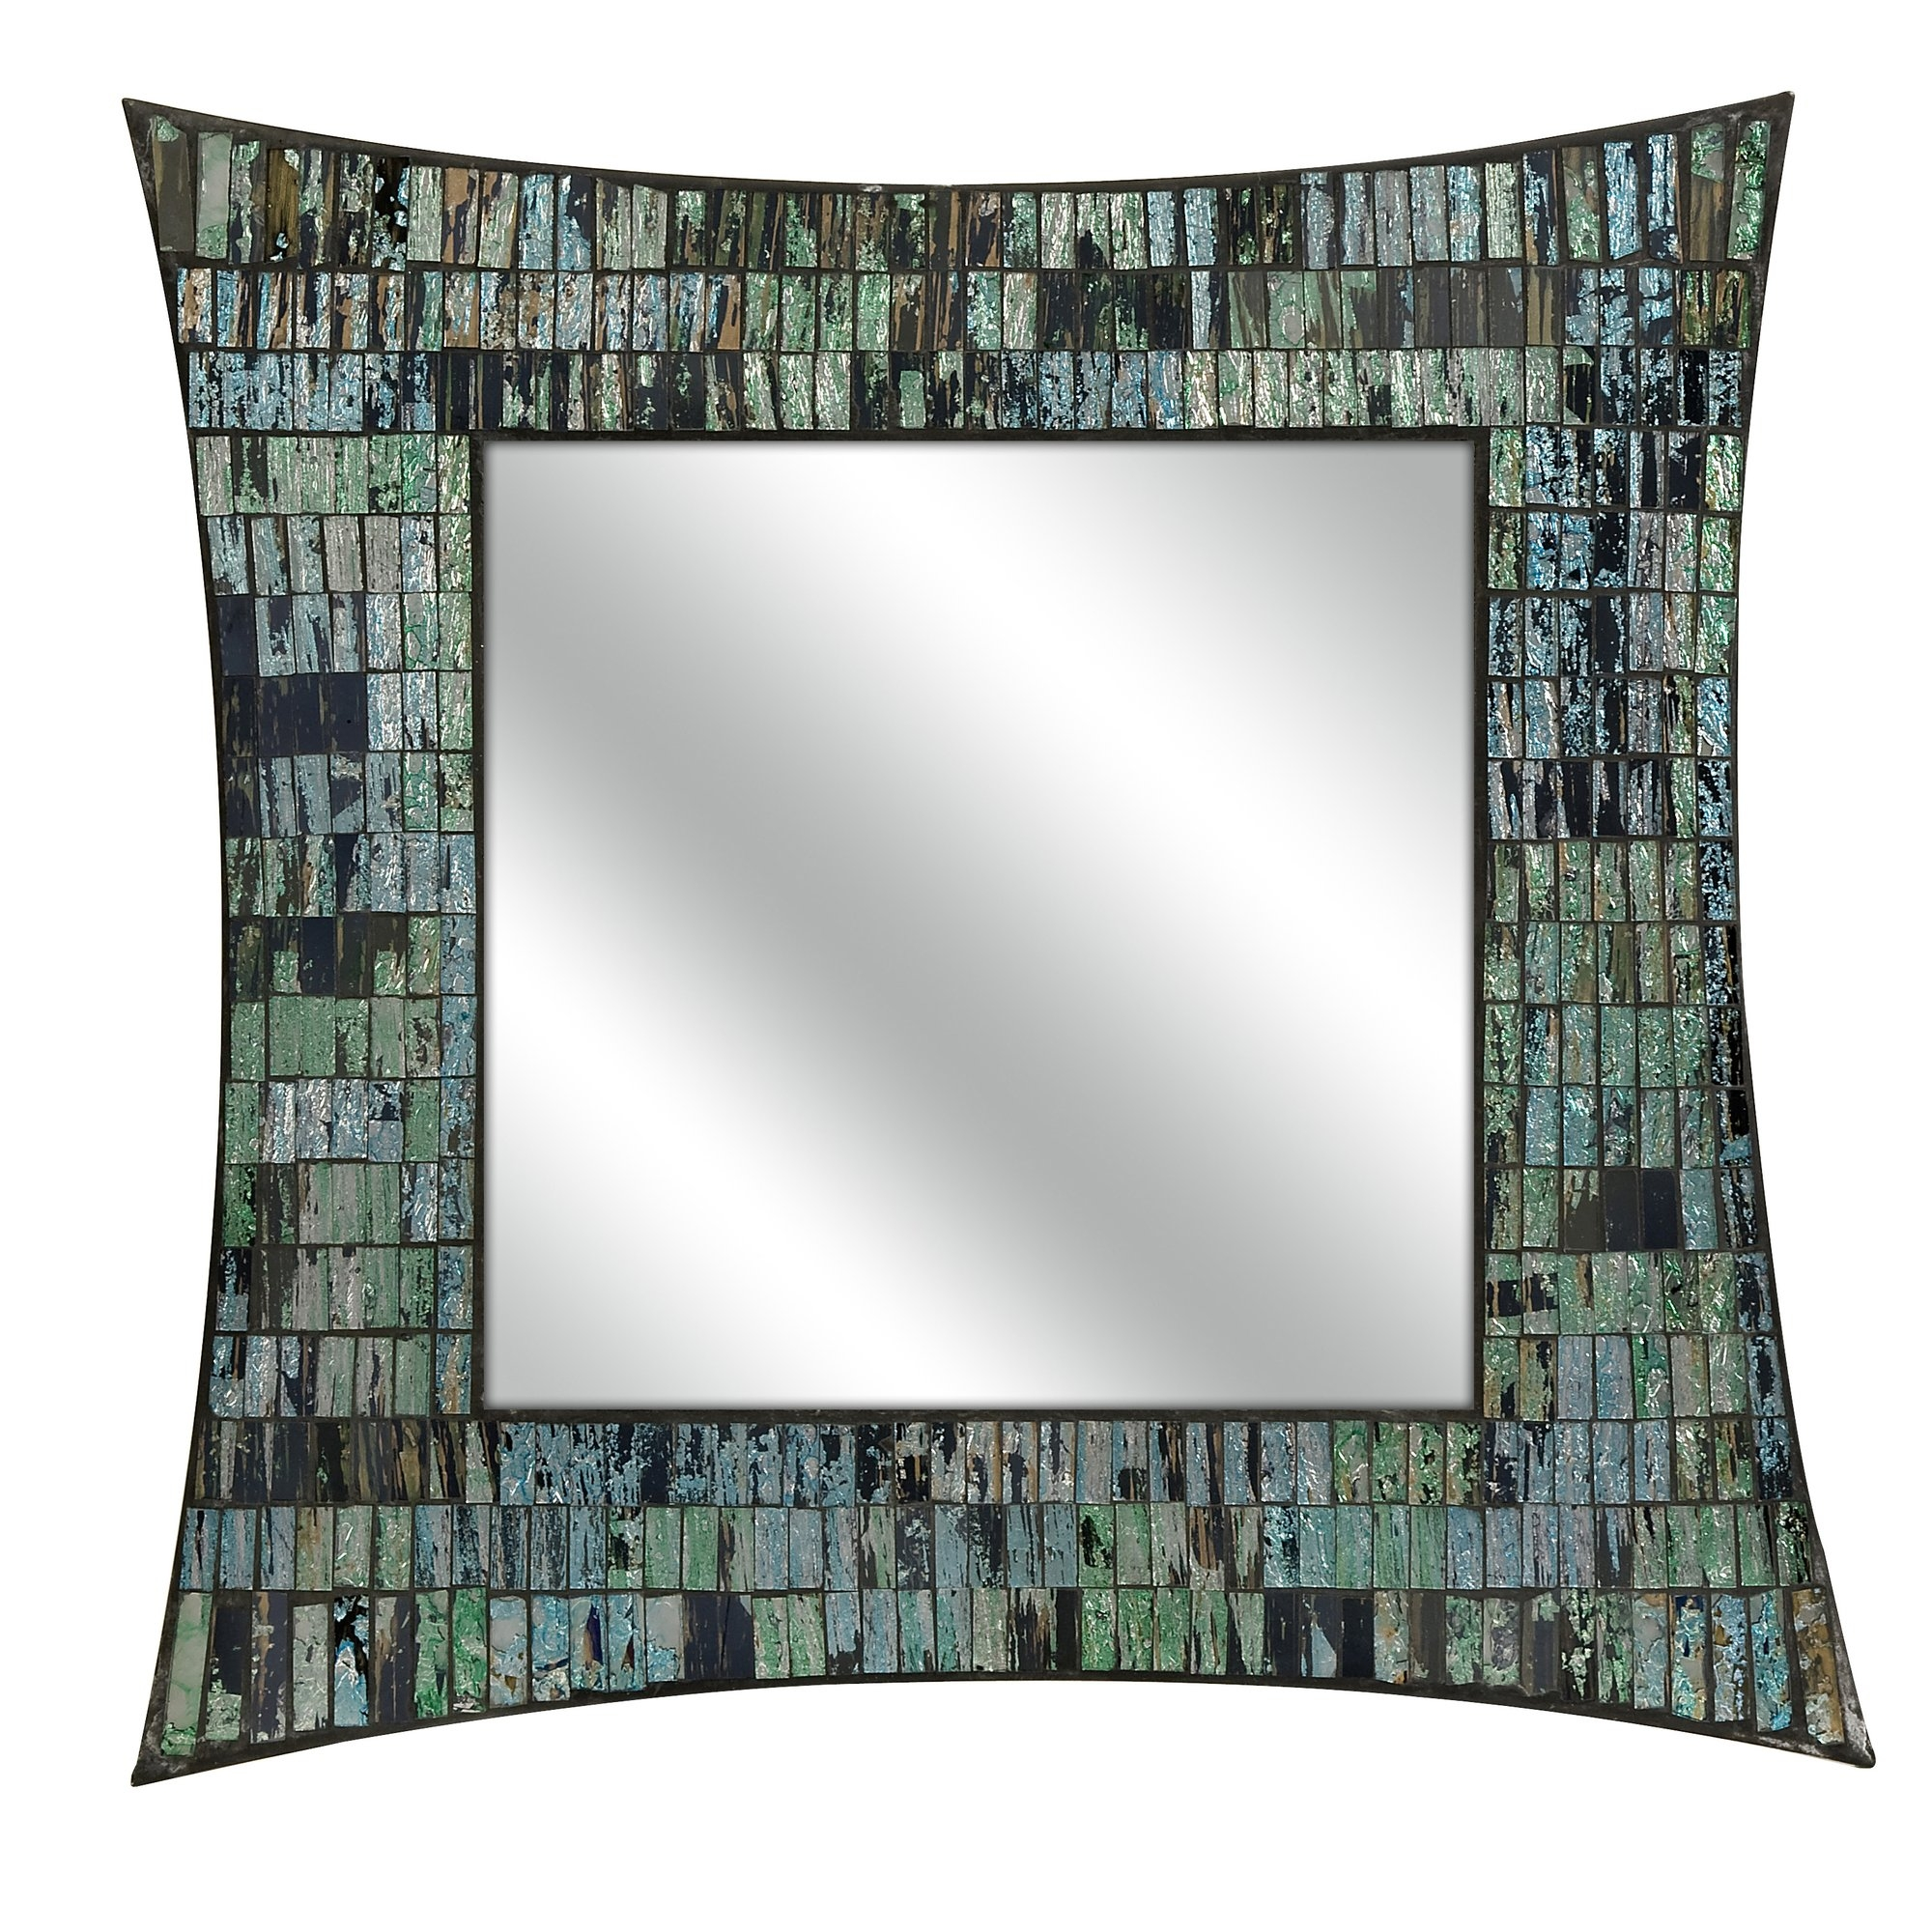 Imax Aramis Mosaic Wall Mirror Reviews Wayfair Within Mosaic Wall Mirror (Image 7 of 15)